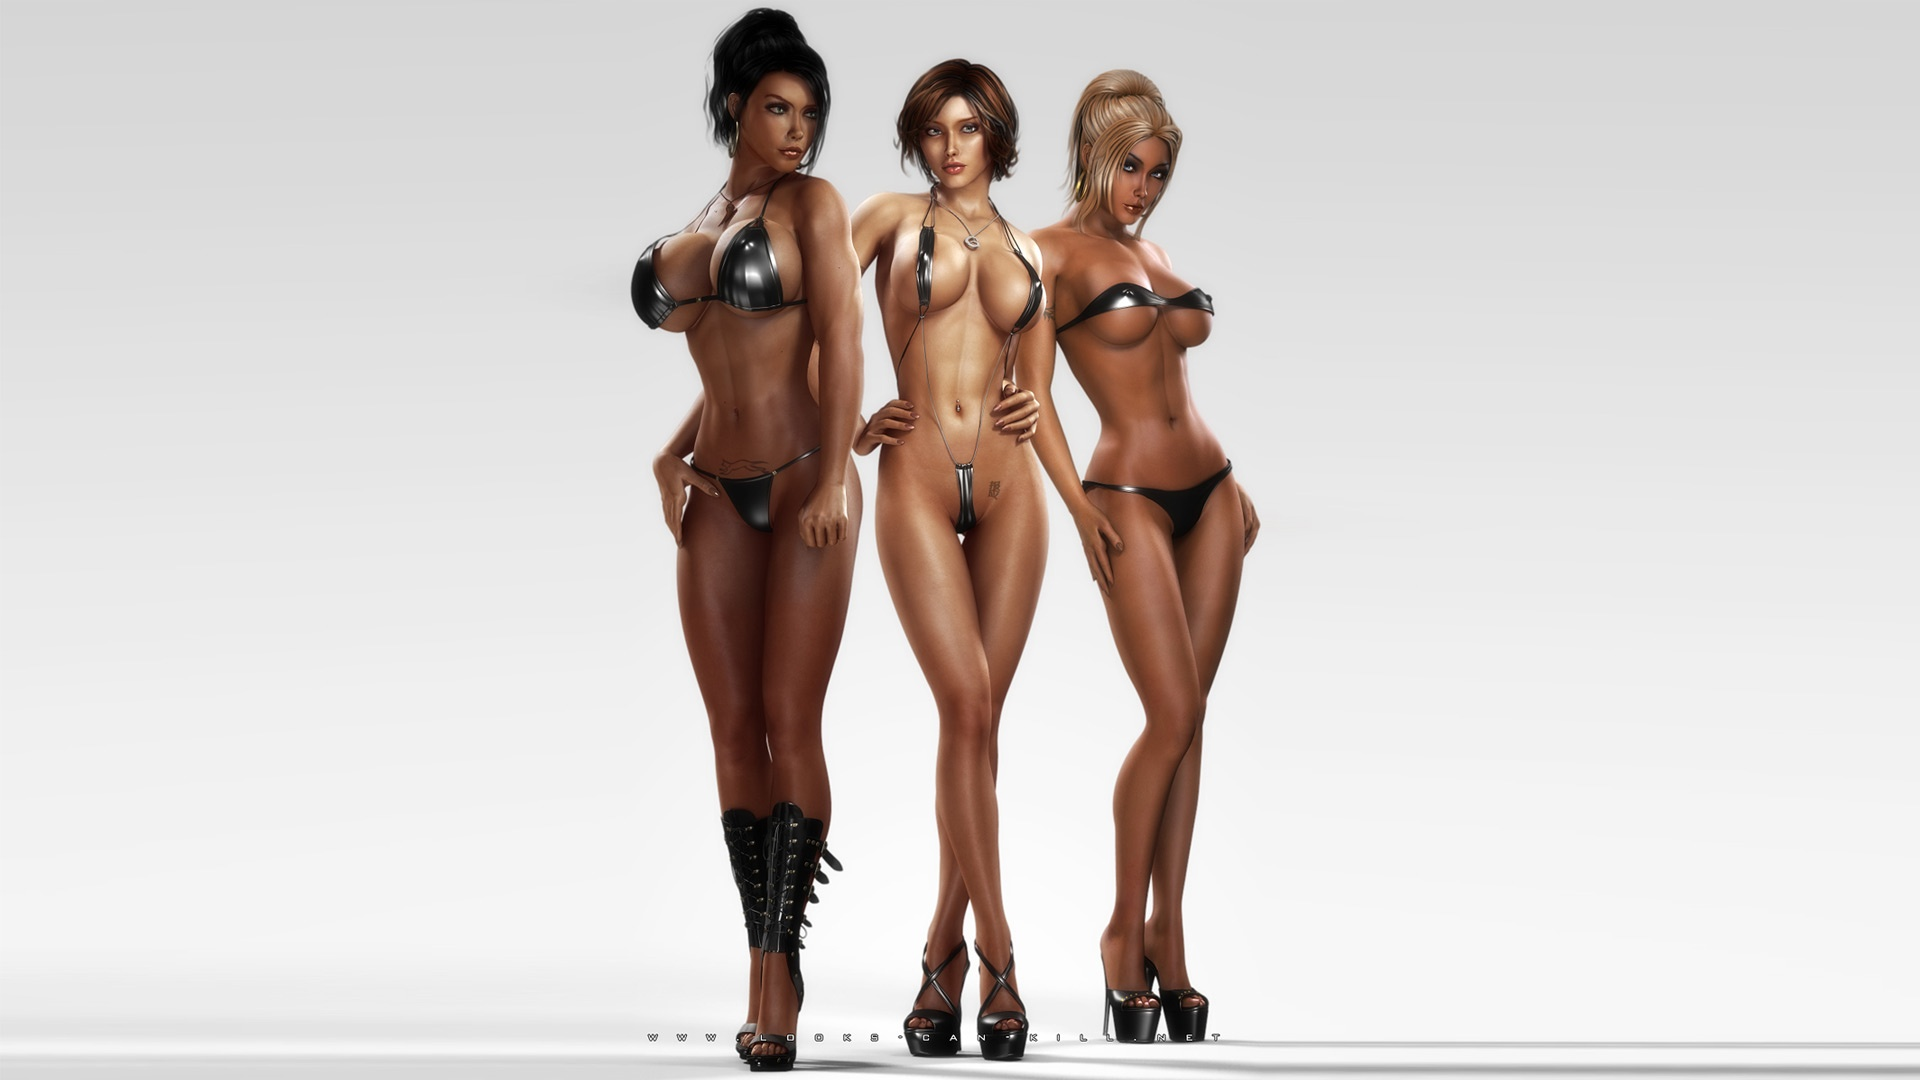 Nude 3d wallpaper fucking animated slave